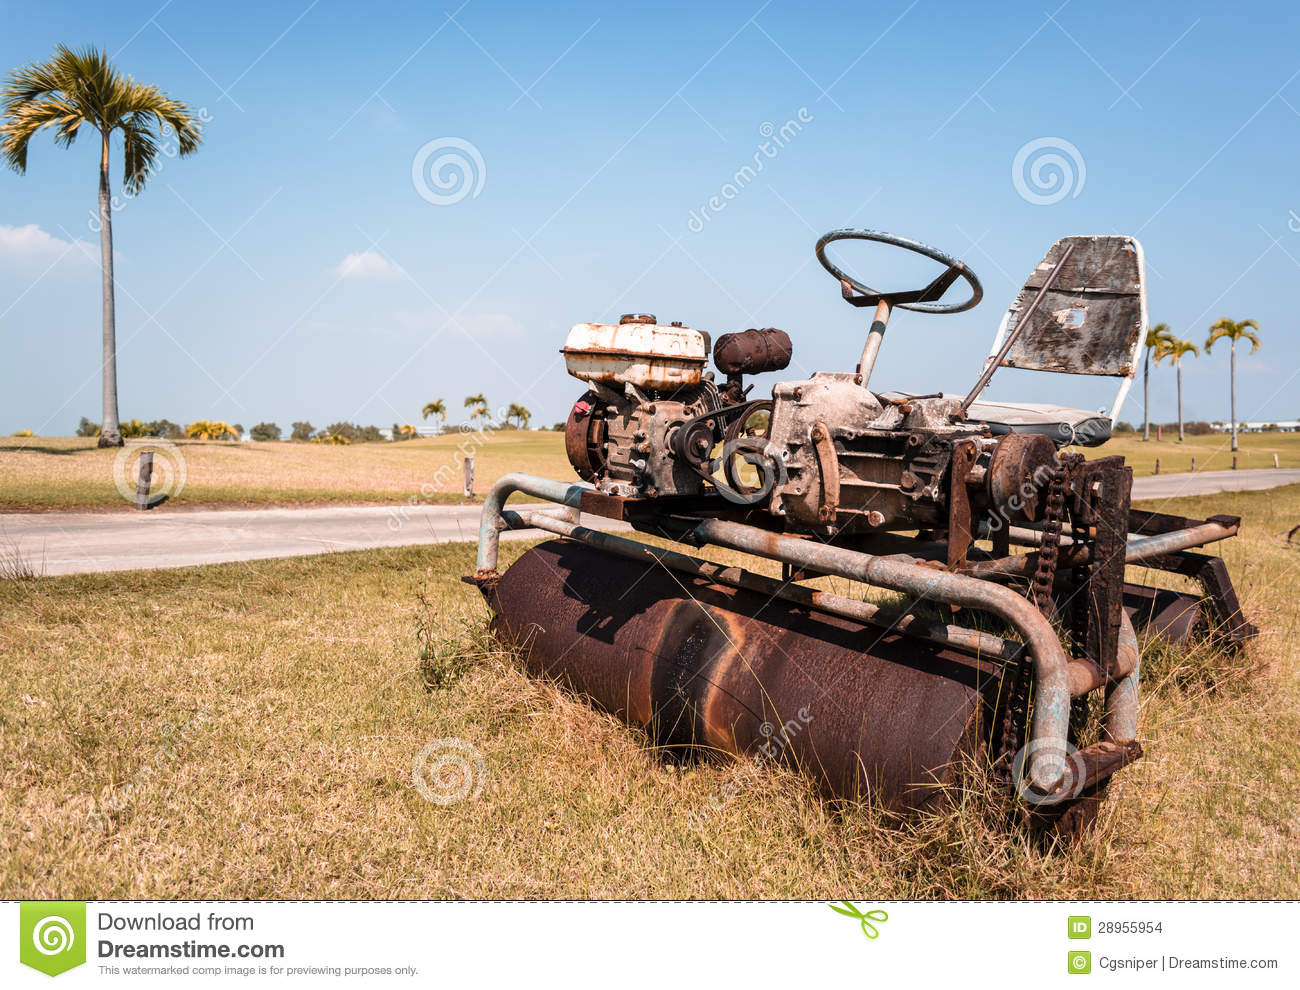 Old Ride-on Lawn Roller stock photo. Image of palm, machinery - 28955954